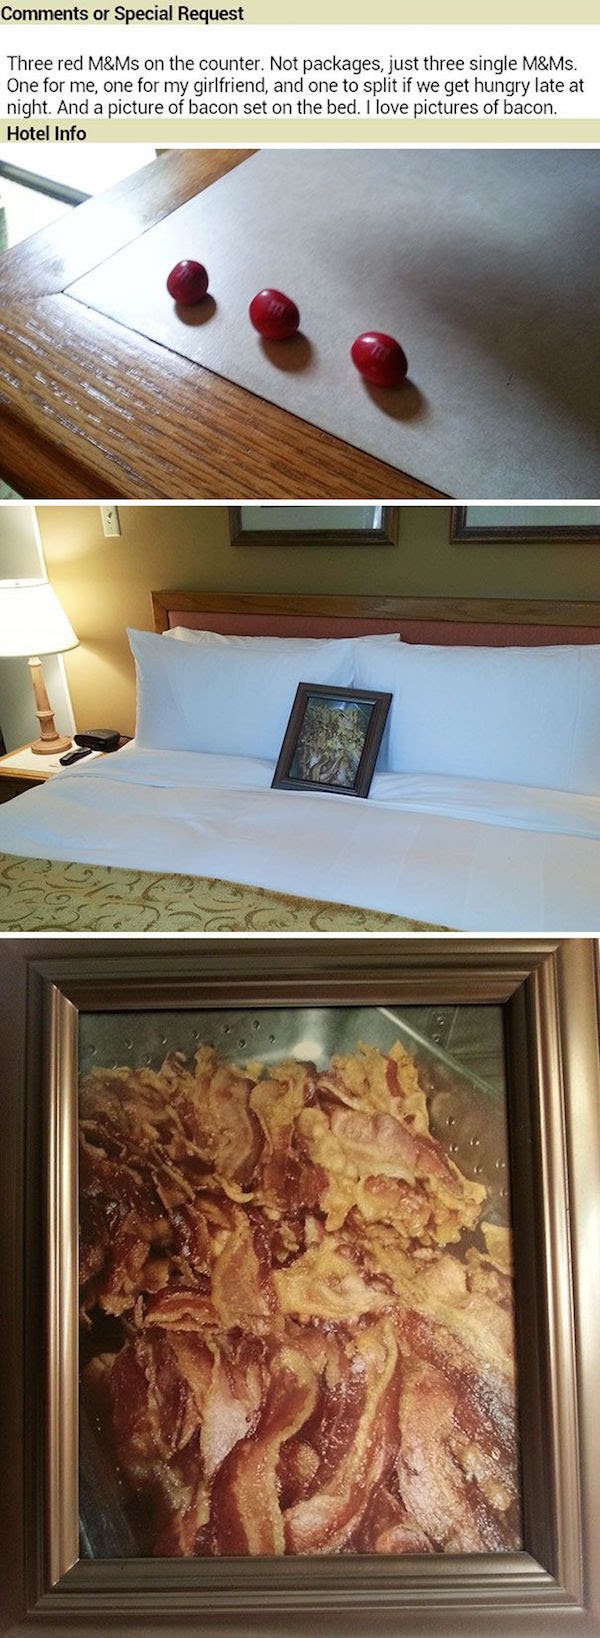 Lets All Get Real Weird With These Hilarious Hotel Requests